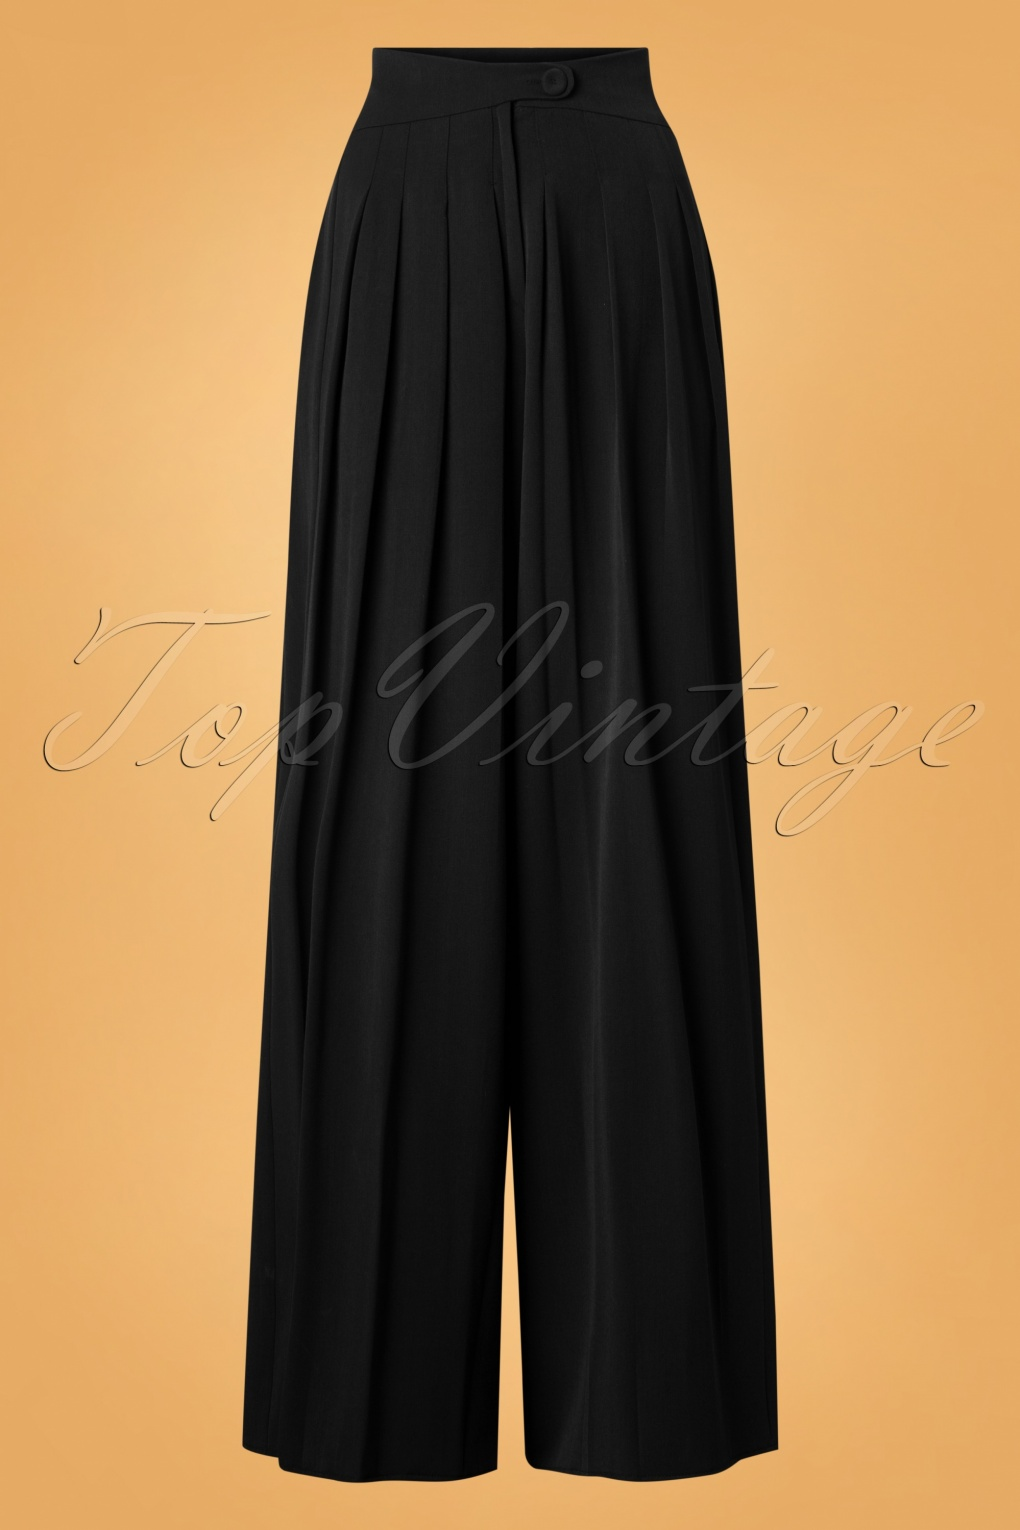 Vintage High Waisted Trousers, Sailor Pants, Jeans 40s Anouk Wide Leg Trousers in Black £69.24 AT vintagedancer.com